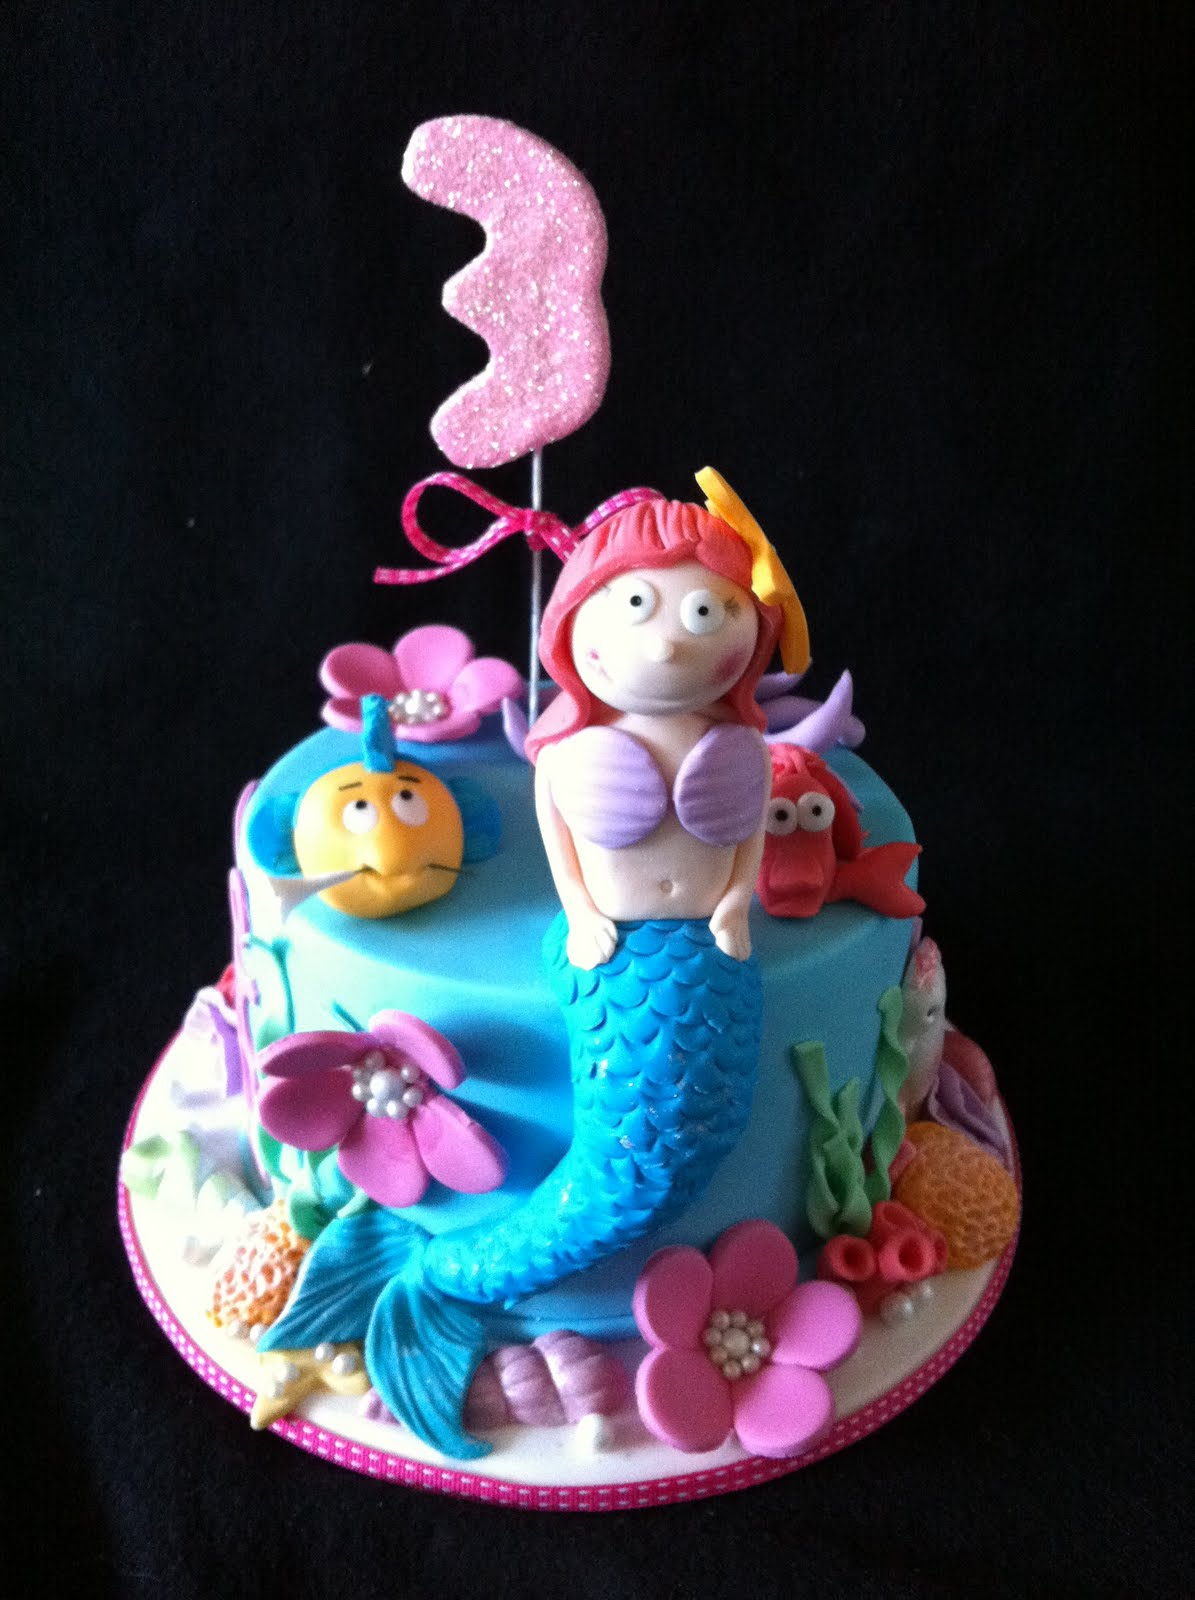 The Cupcake Stand Little Mermaid Cake